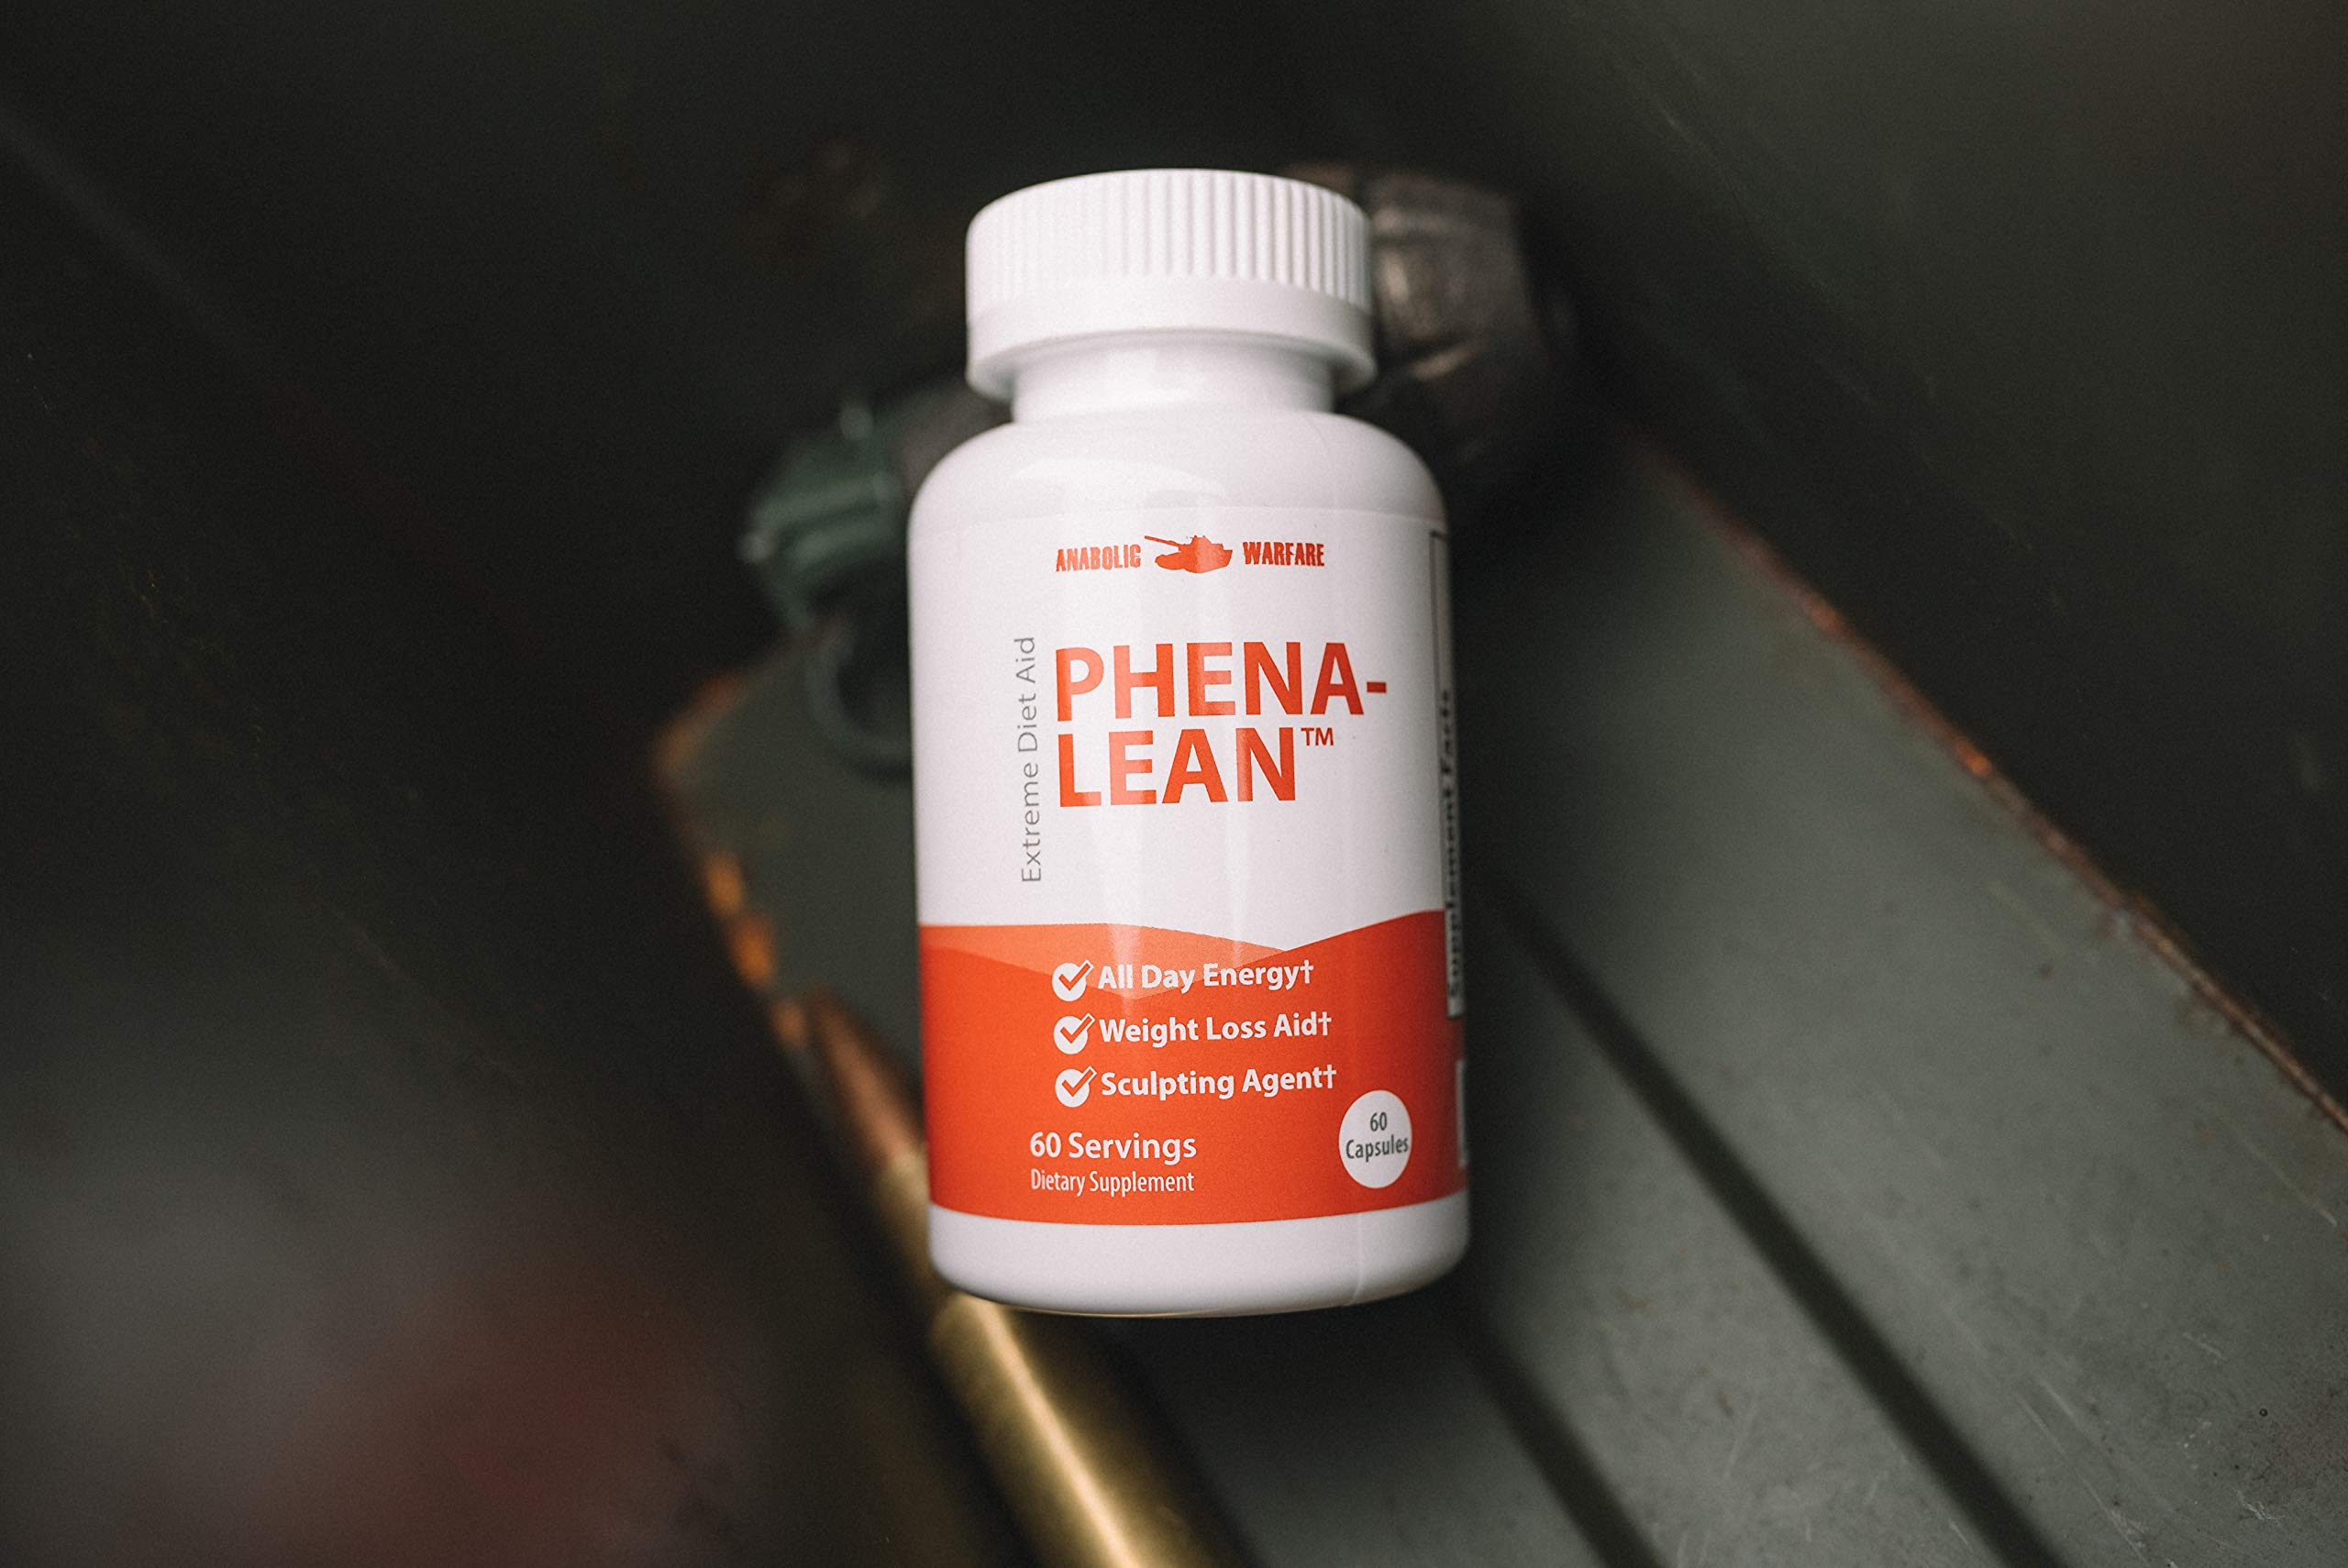 Phena-Lean Thermogenic Fat Burner Supplement by Anabolic Warfare - Aids Weight Loss Efforts, Boosts Energy and Focus (60 Capsules) by Anabolic Warfare (Image #4)